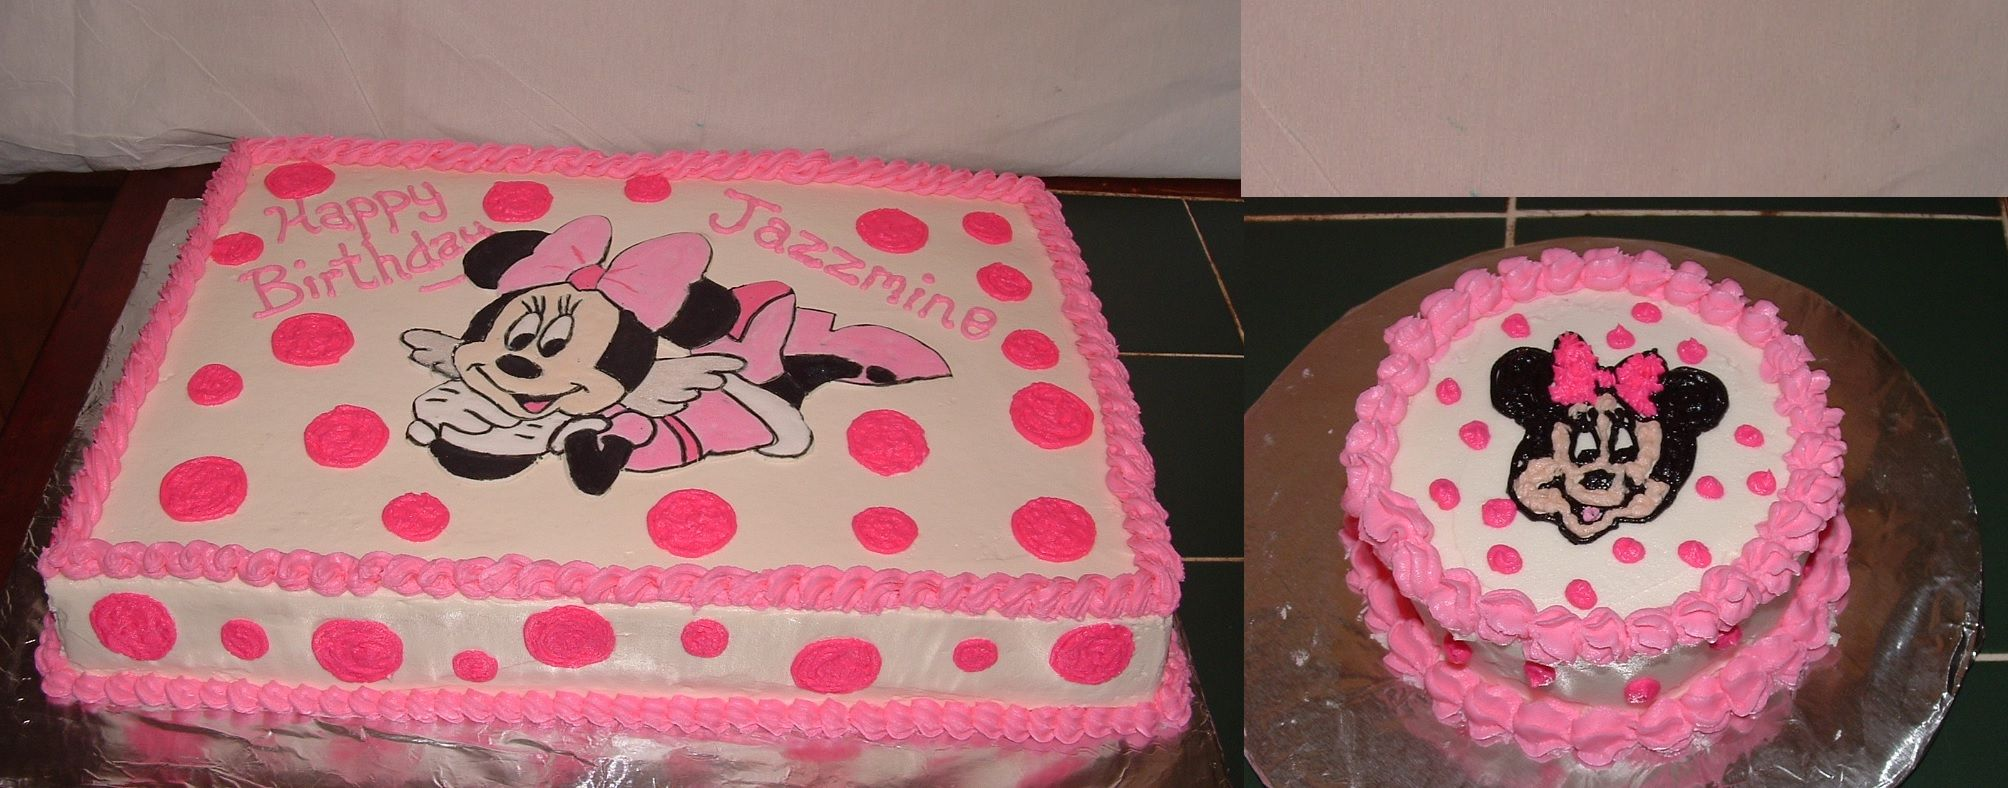 Minnie Mouse Sheet Cake With Smash Cake Bright Pink 1st Birthday Cake For Girls Minnie Birthday Party Birthday Sheet Cakes